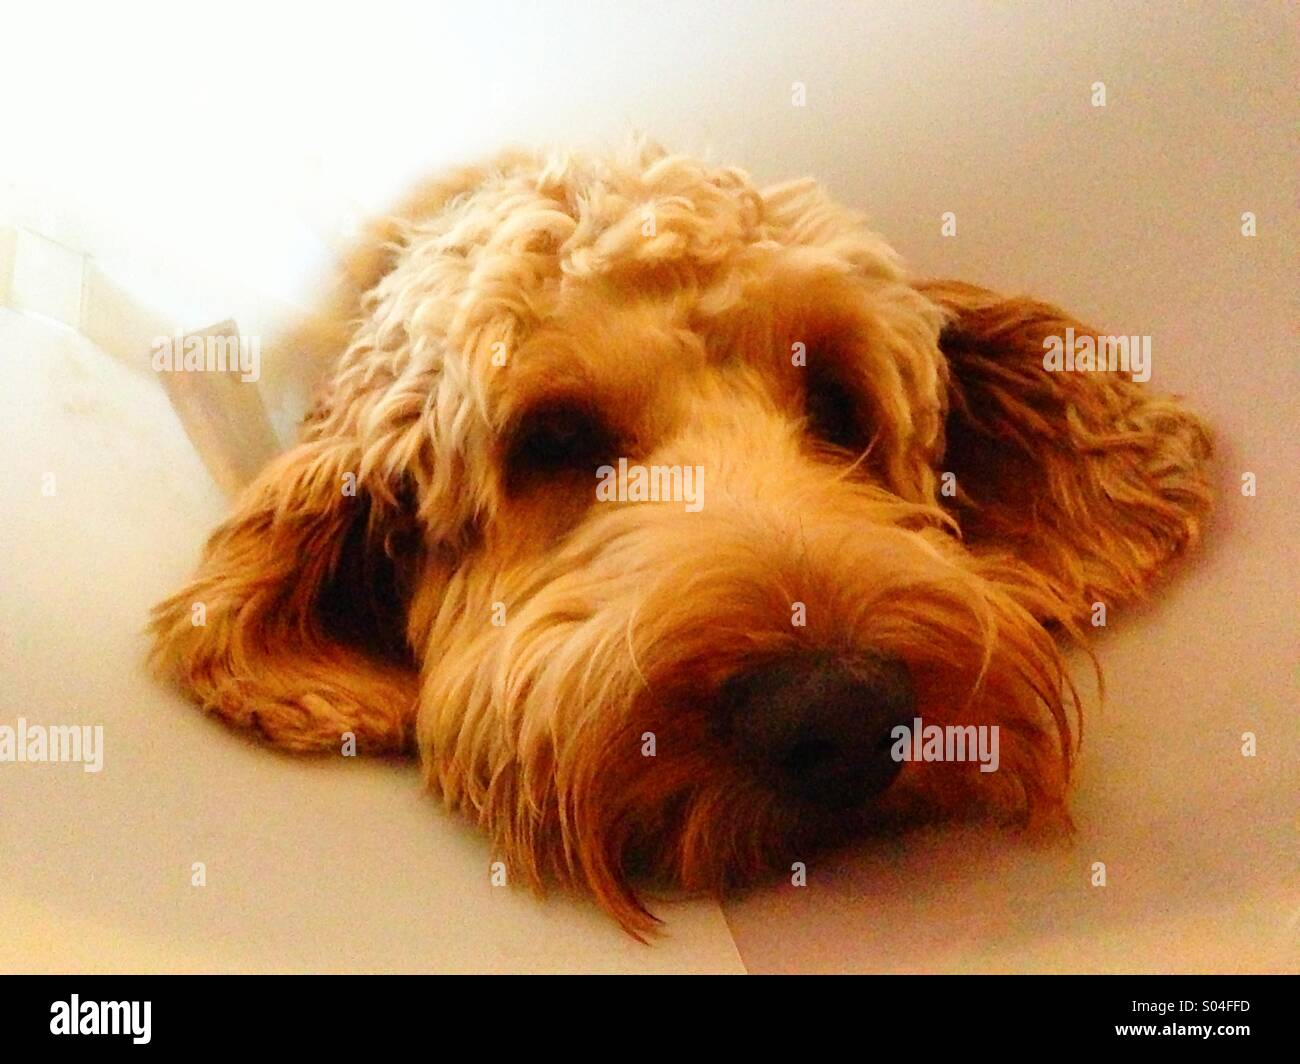 Cockerpoo dog looking sad and wearing a surgical collar. - Stock Image